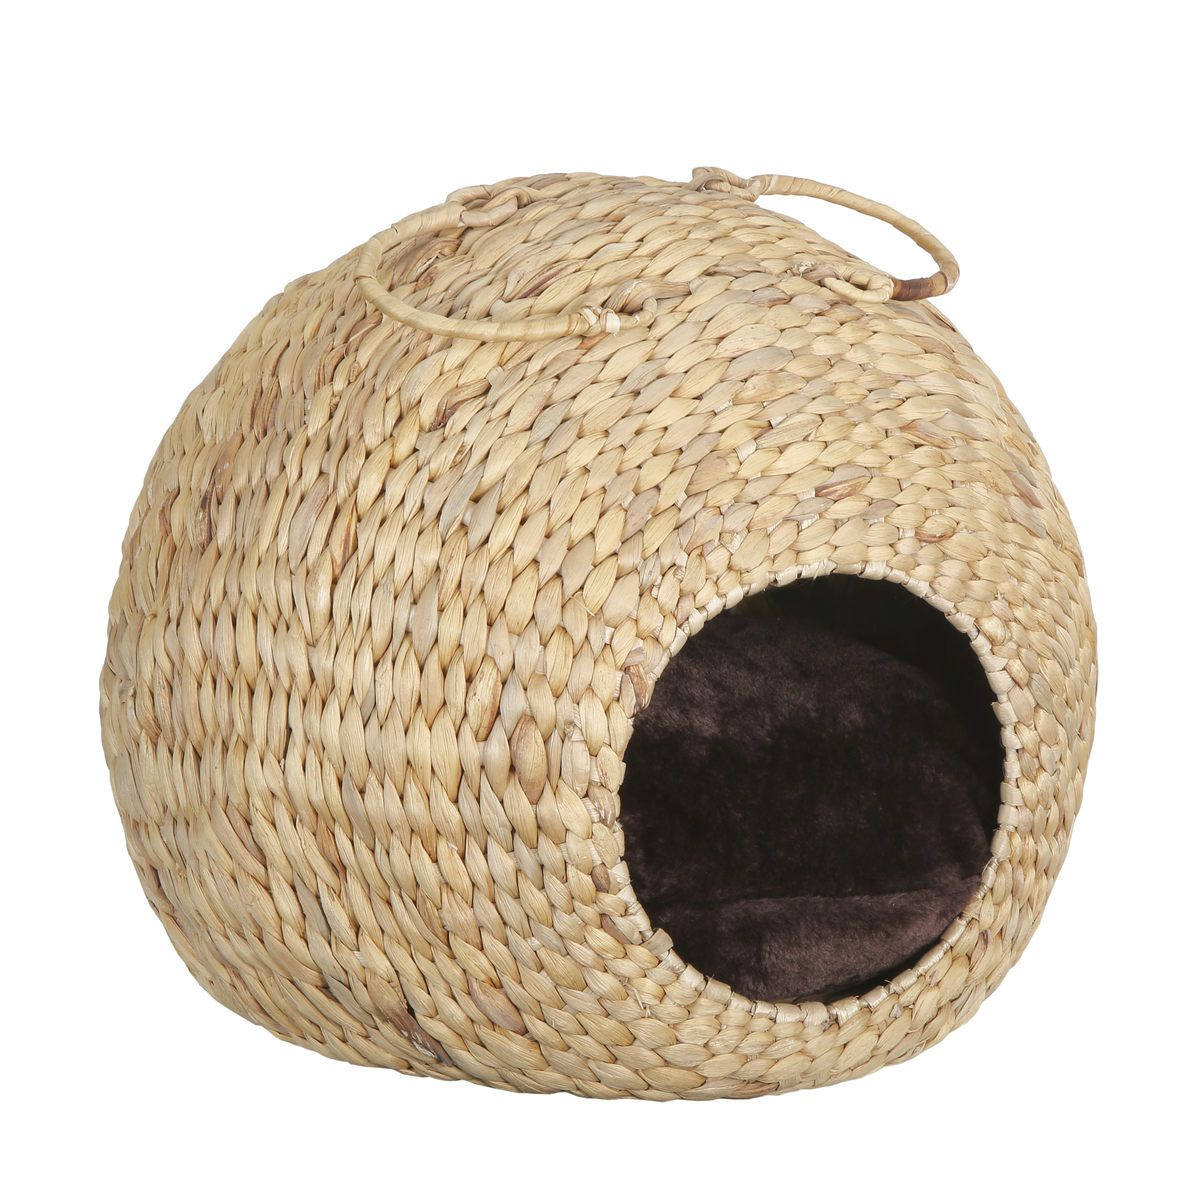 Woven Cat Cave Kmart (With images) Cat cave, Cat bed